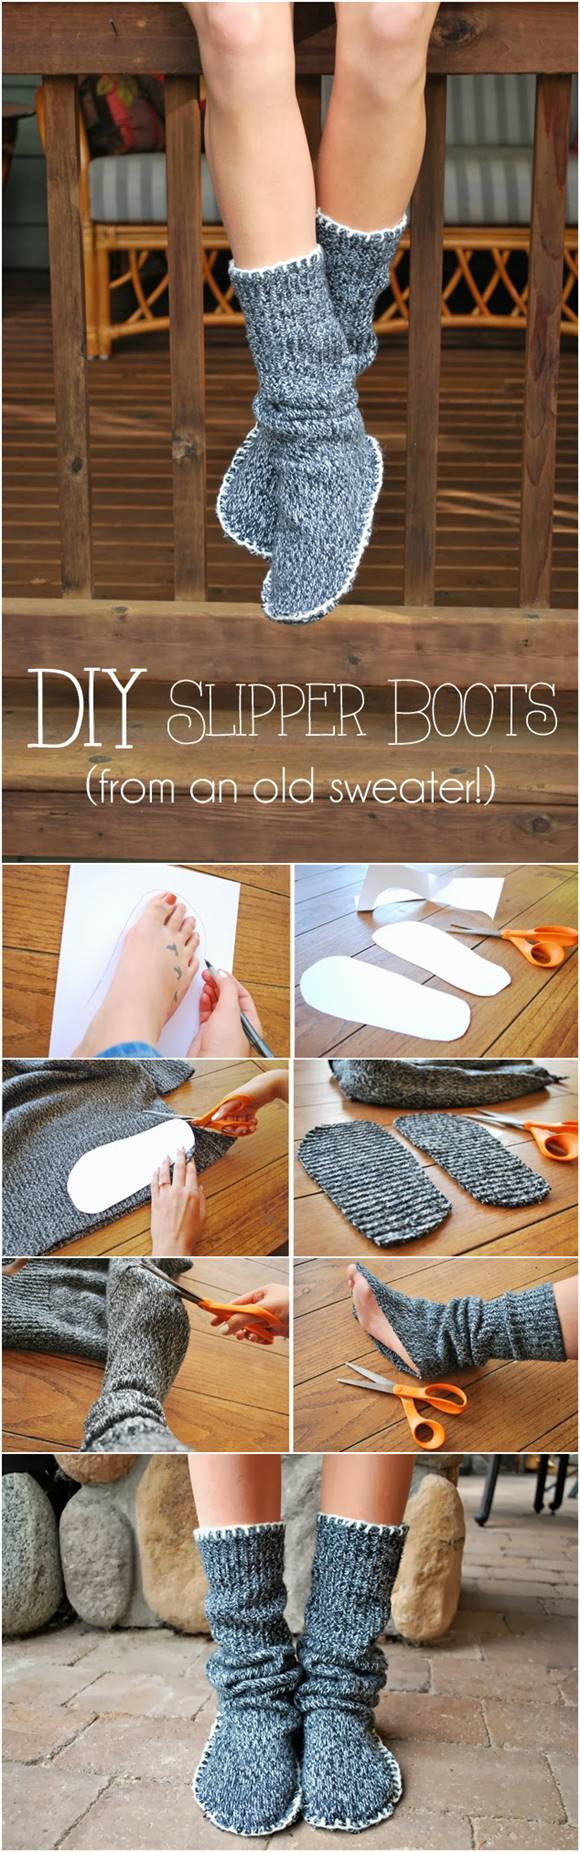 How To Upcycle Old Sweater Into Slipper Boots